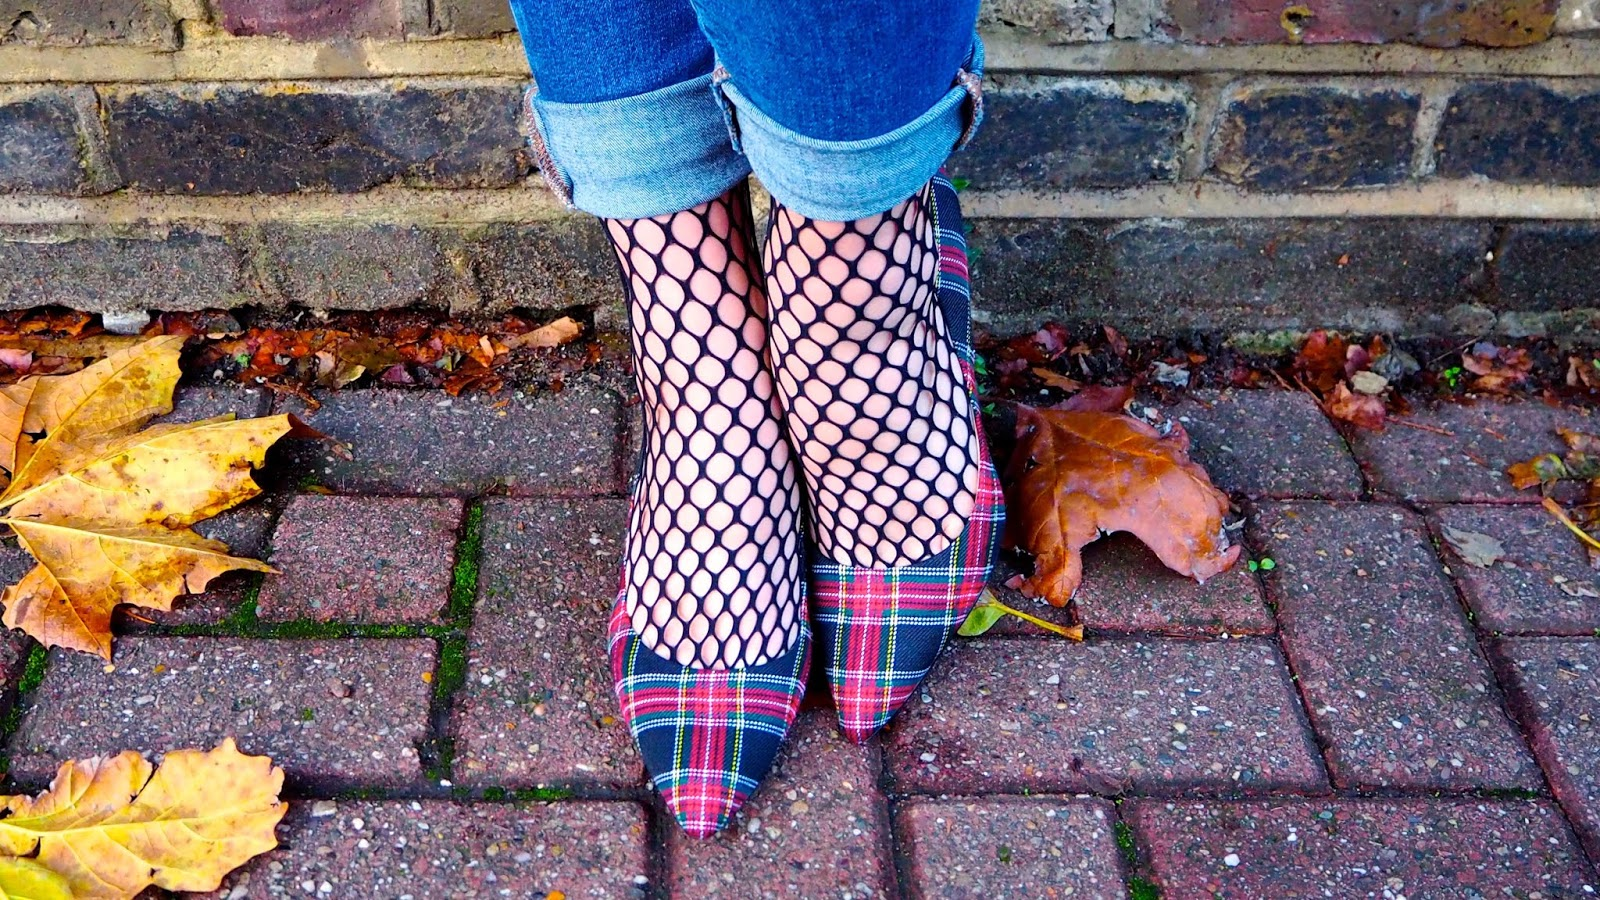 rolled up jeans, oversized fishnet socks, red plaid pointed toe high heels and autumn leaves on the ground